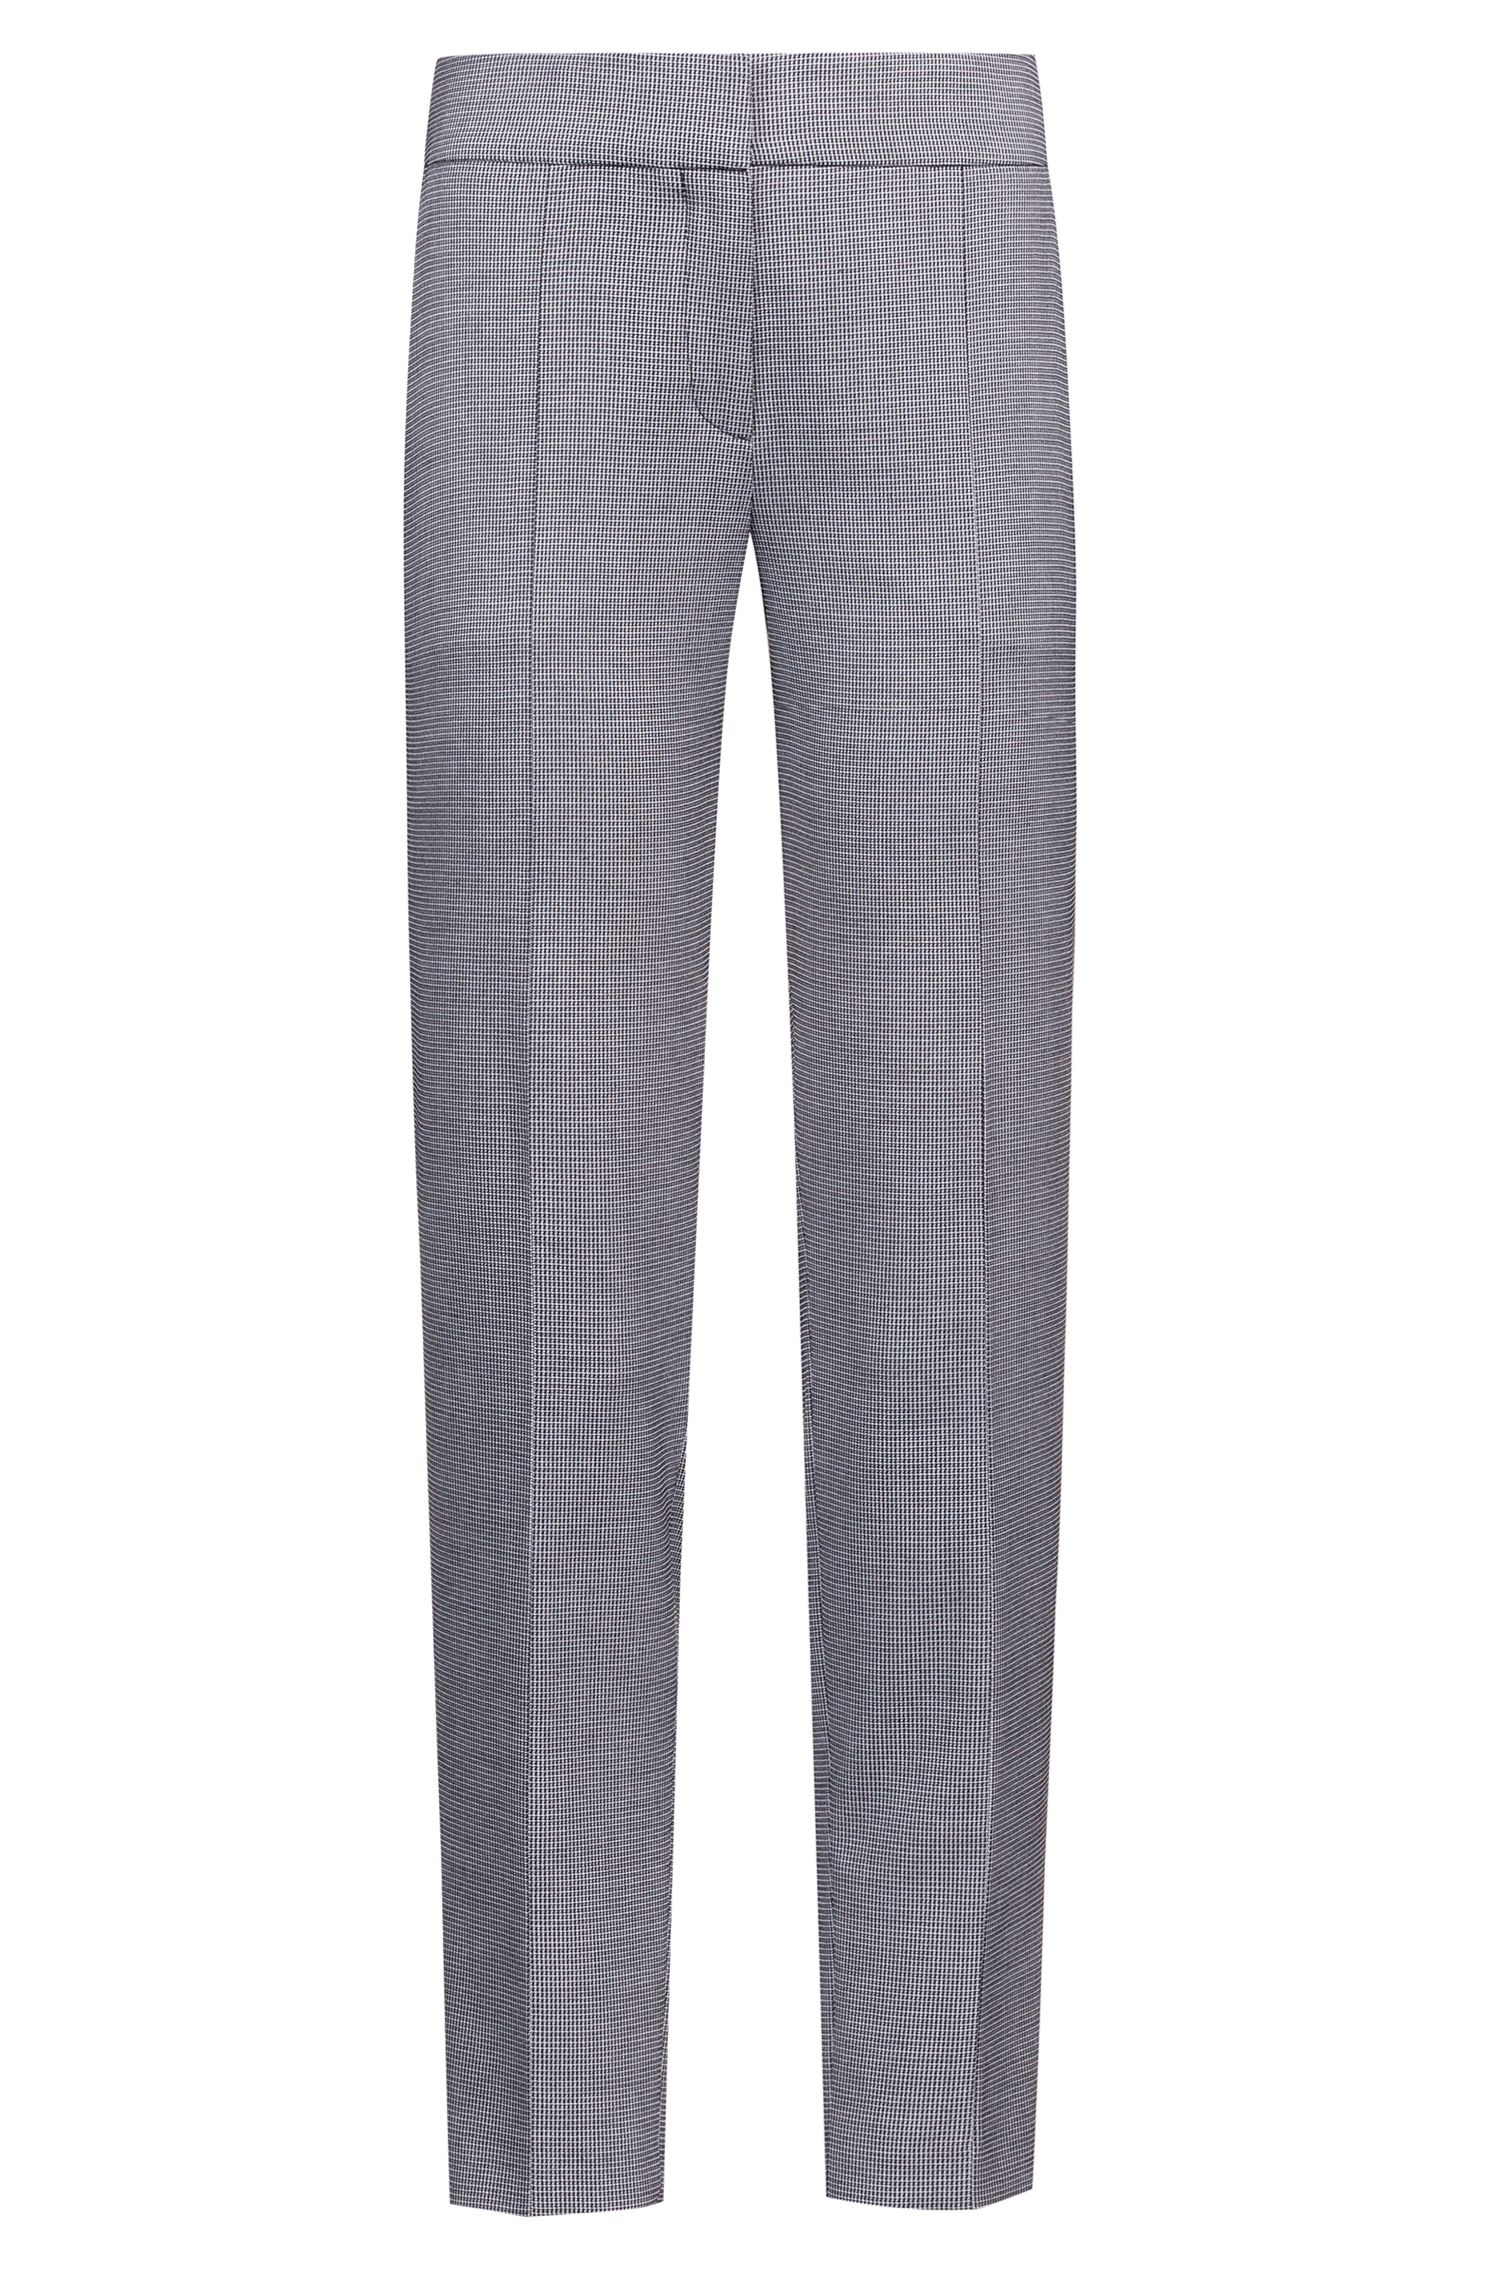 Slim-fit cropped trousers in patterned stretch fabric, Grey